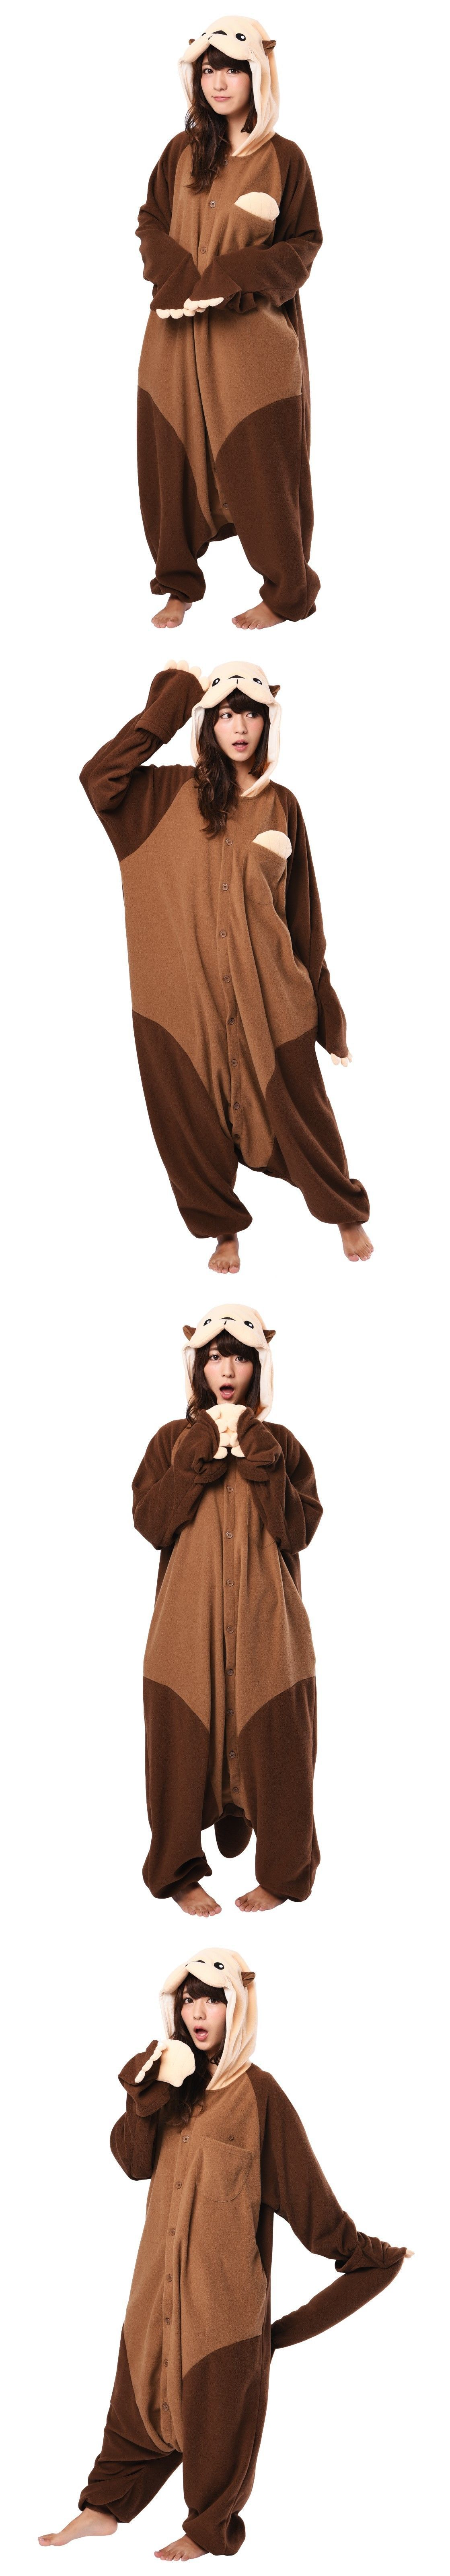 Unisex 86207  Sea Otter Kigurumi - M+ And Xl Halloween Costume From Usa -   BUY IT NOW ONLY   59 on eBay! 913daa053